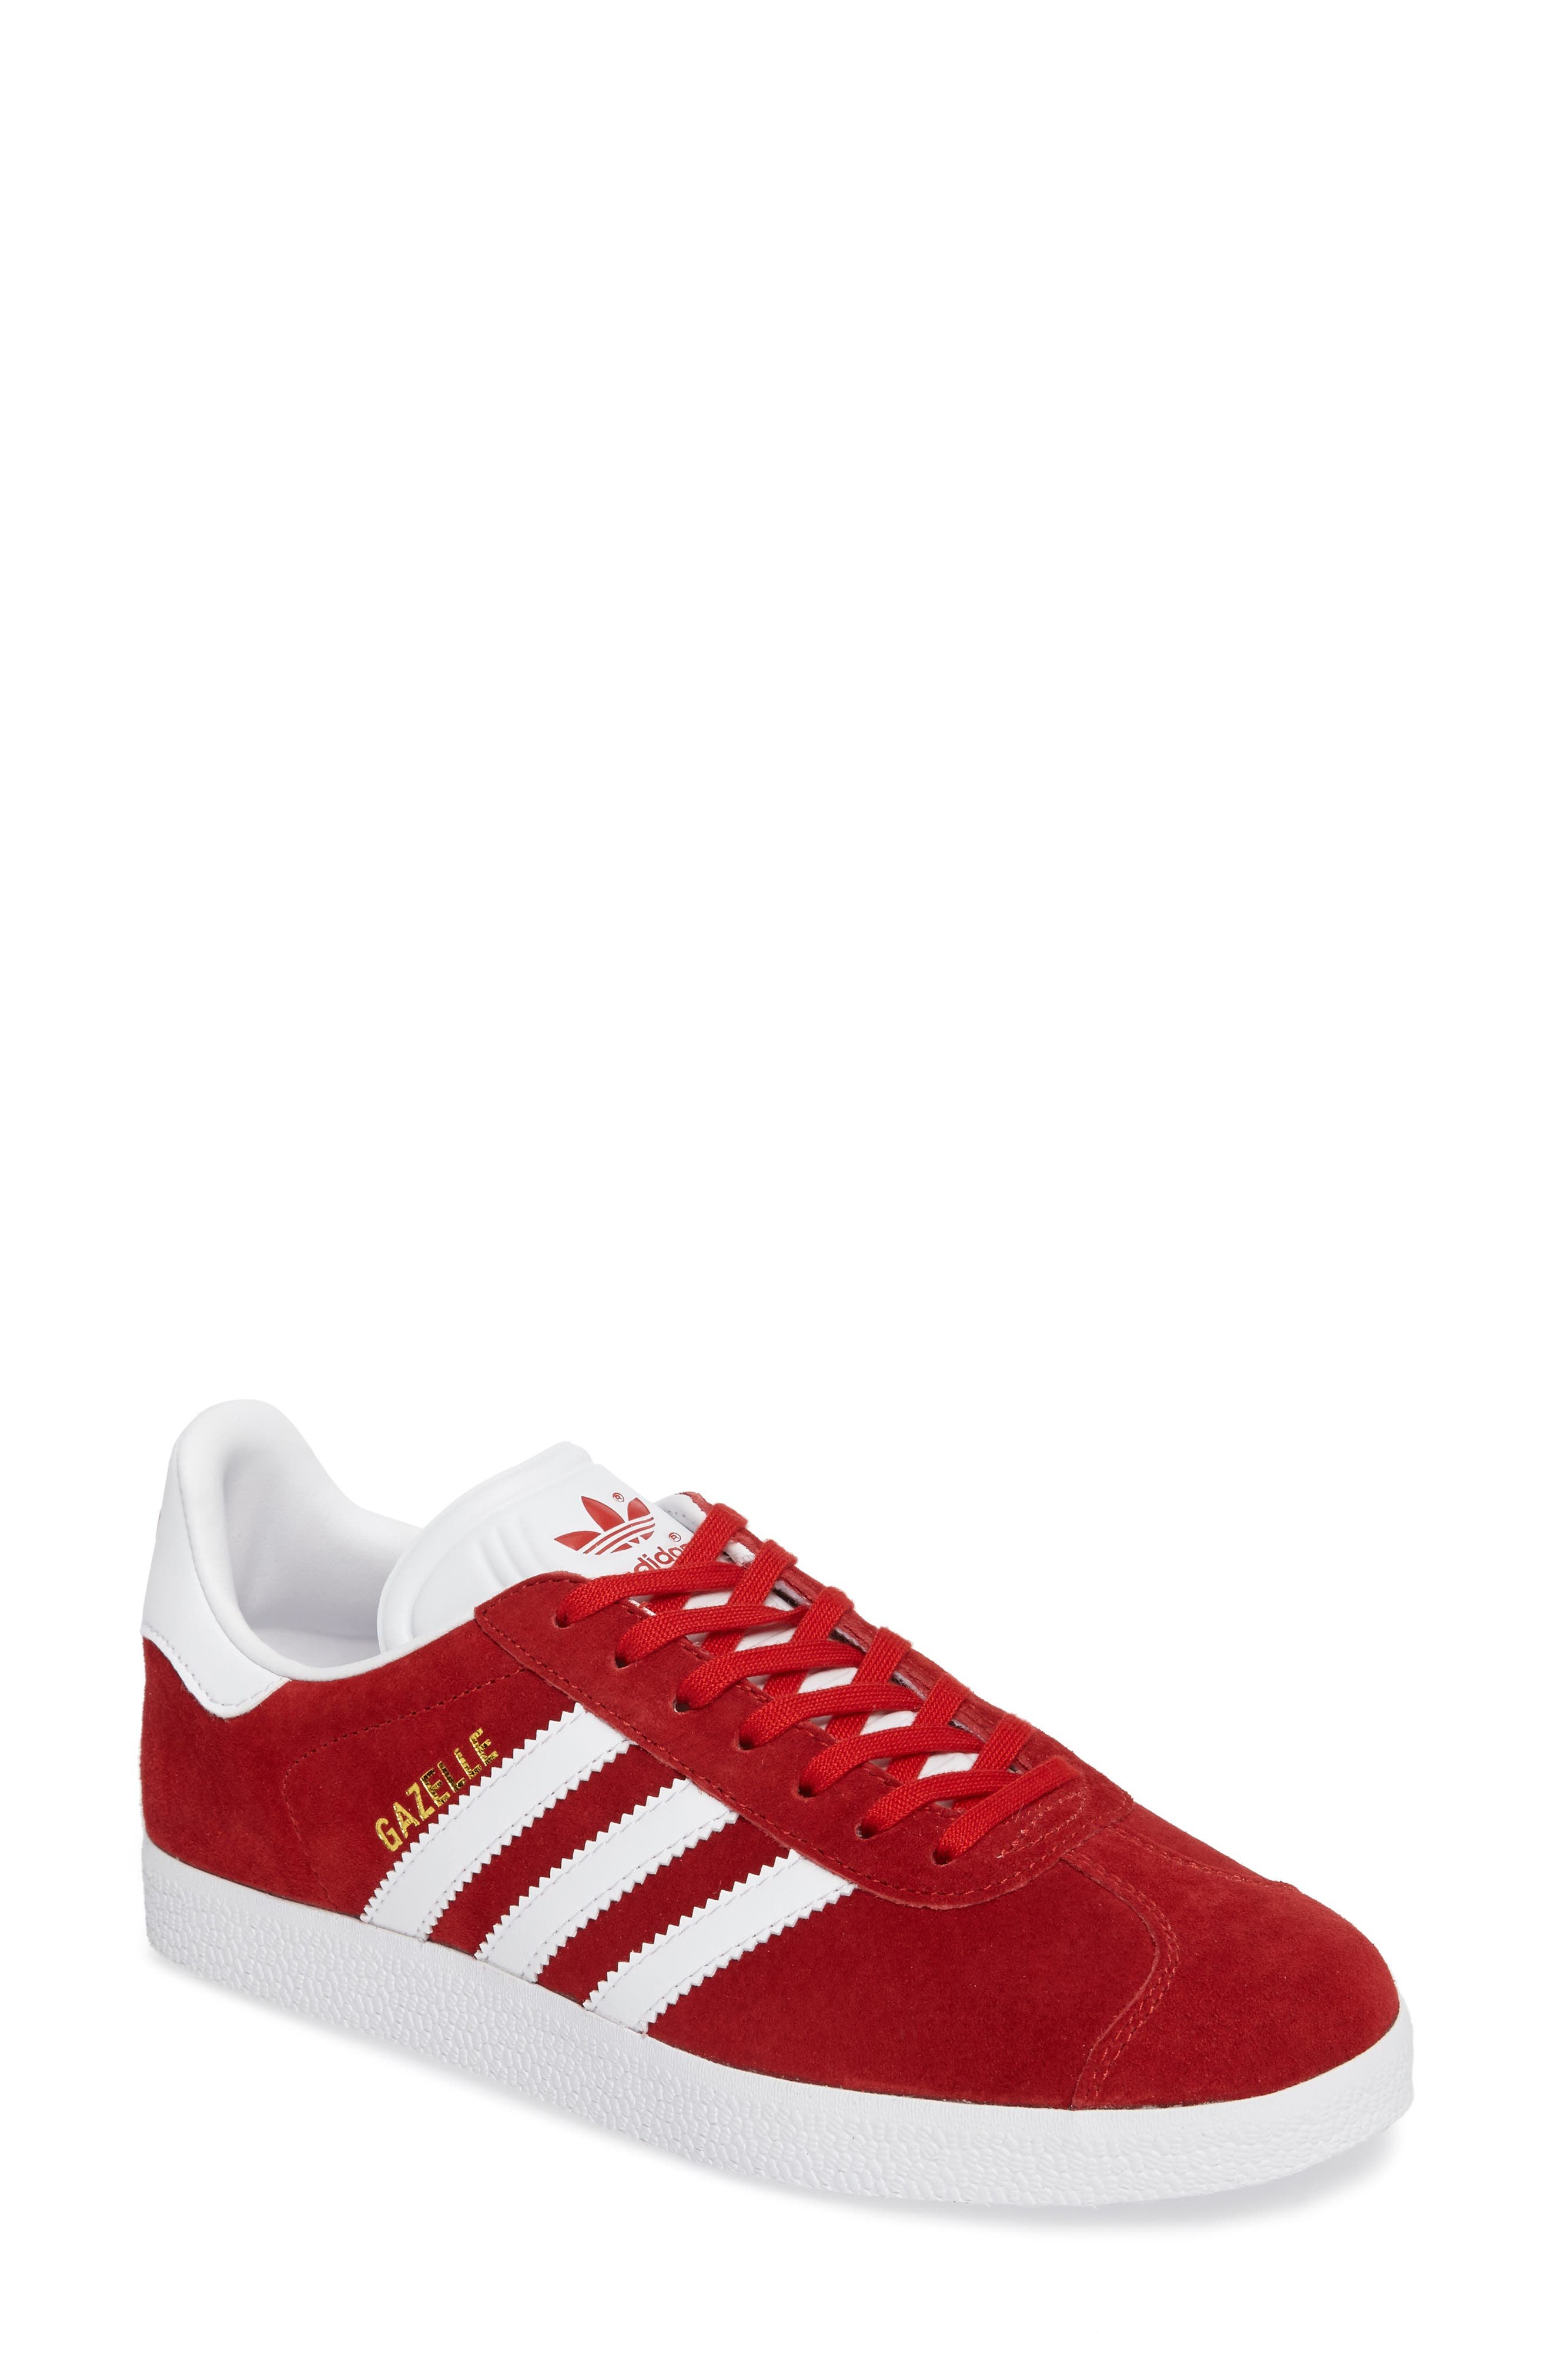 quality design 571db 6d5a2 Adidas Originals Gazelle Sneaker In Scarlet White Gold Metallic